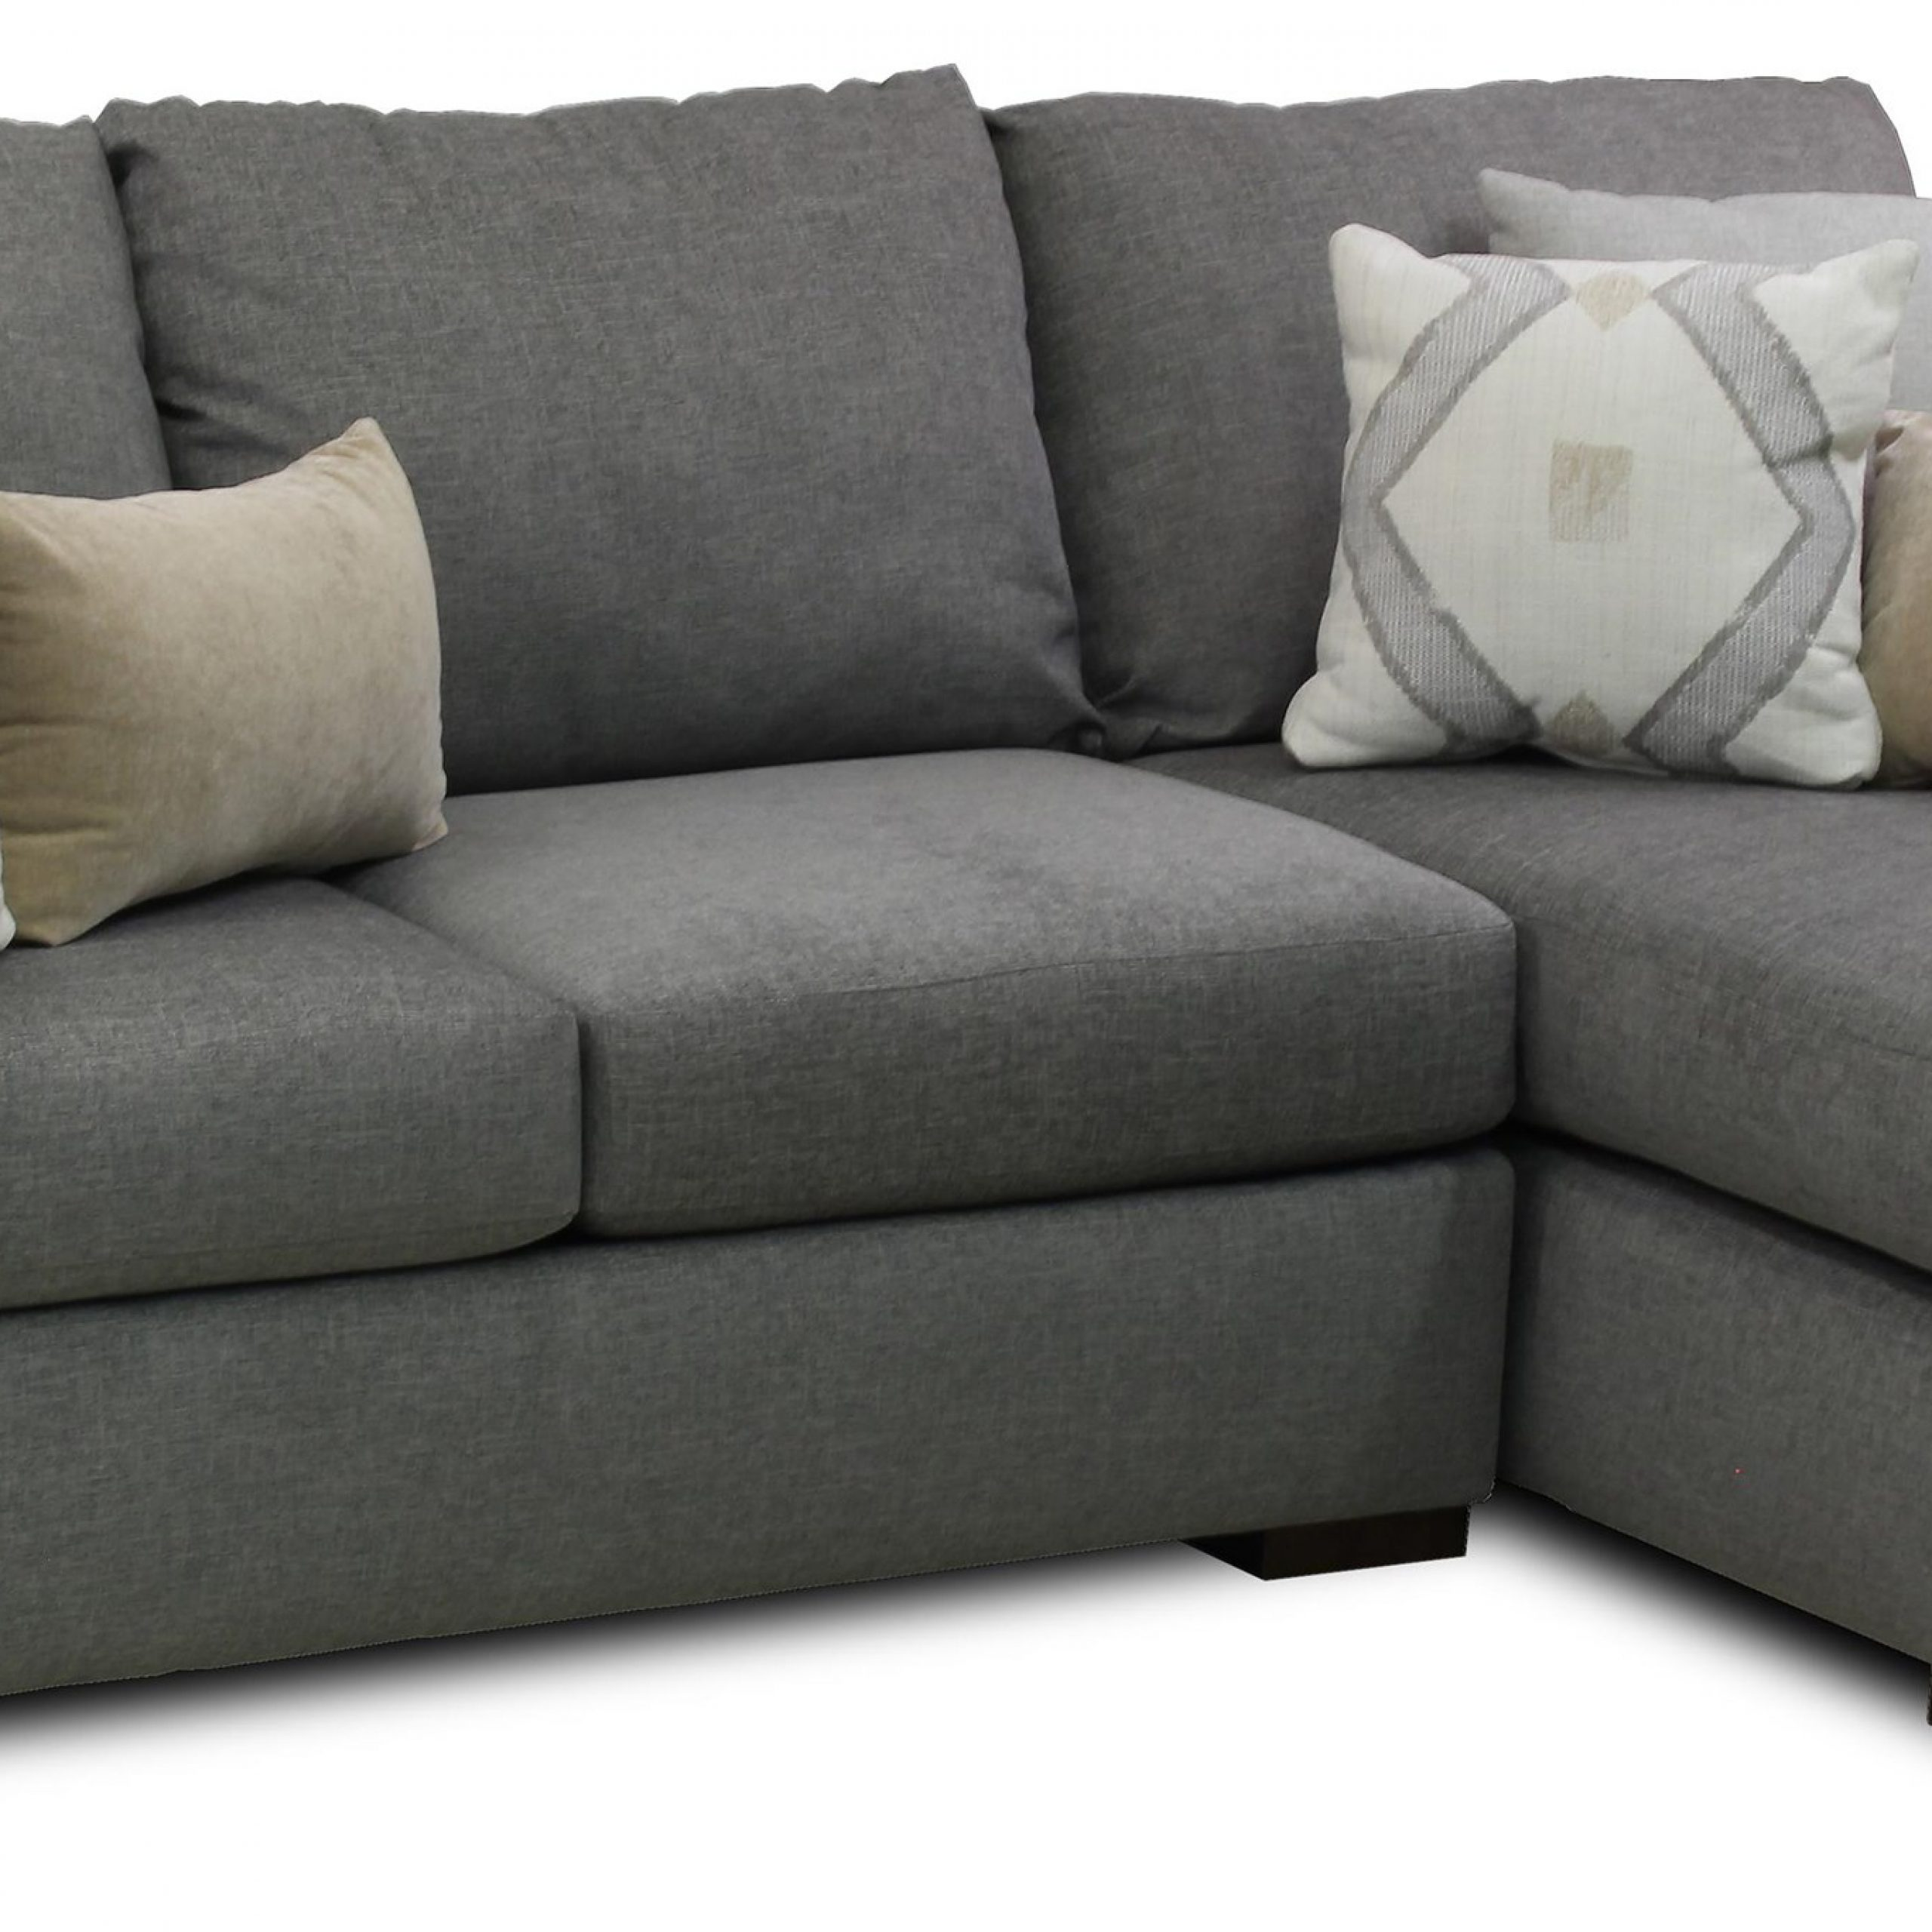 Metropia Coley Contemporary Sectional Sofa With Chaise Pertaining To 4Pc Crowningshield Contemporary Chaise Sectional Sofas (View 8 of 15)